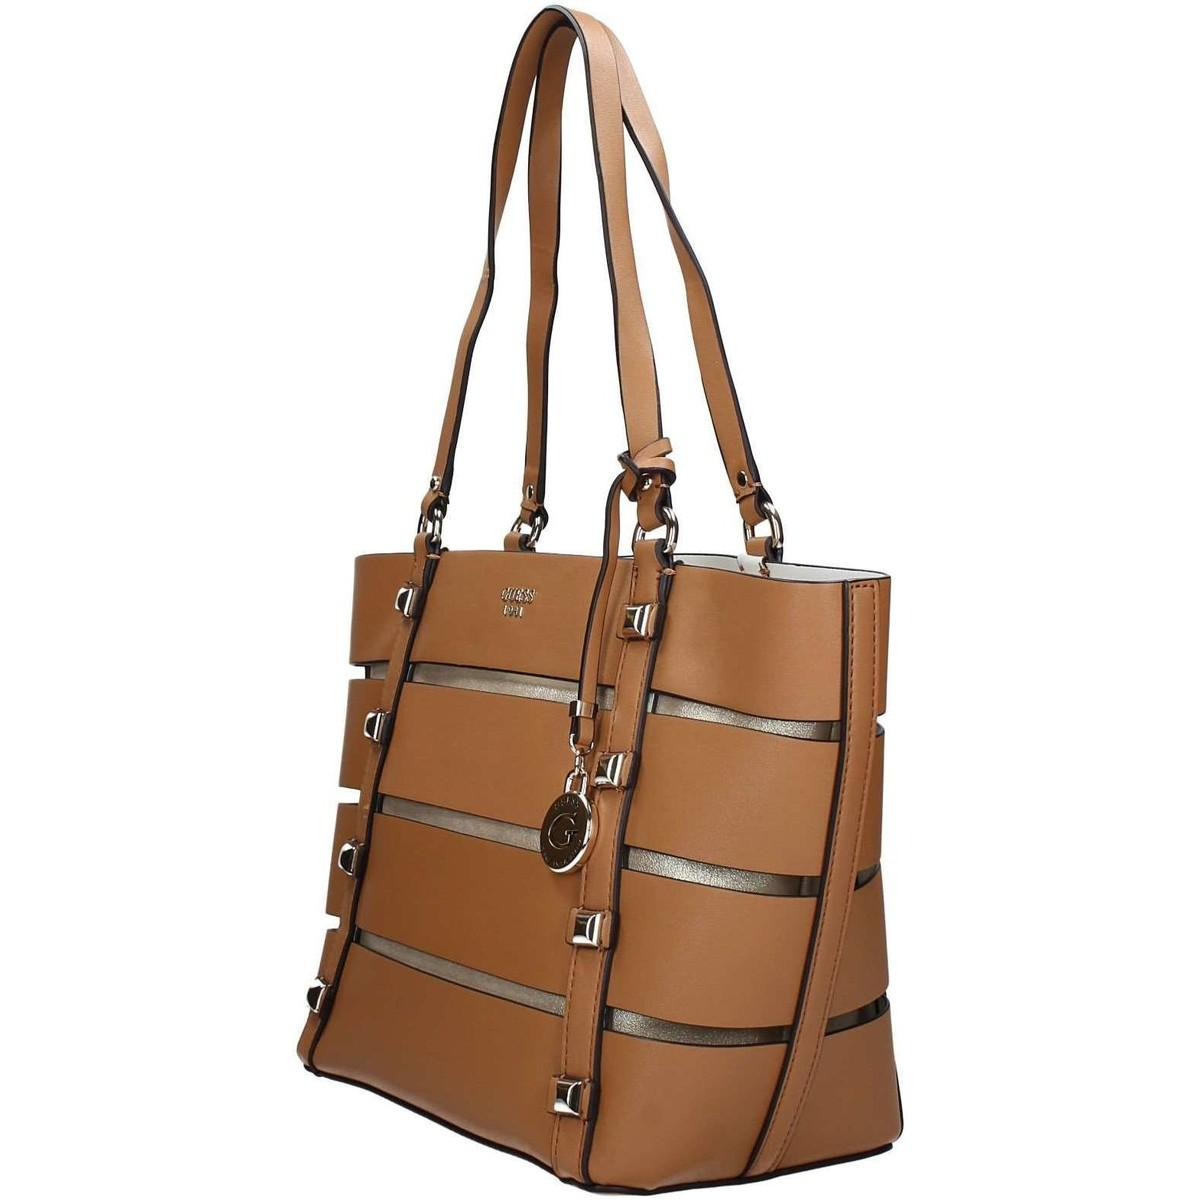 HWTG68 60230 Shopper Accessories Guess hki17